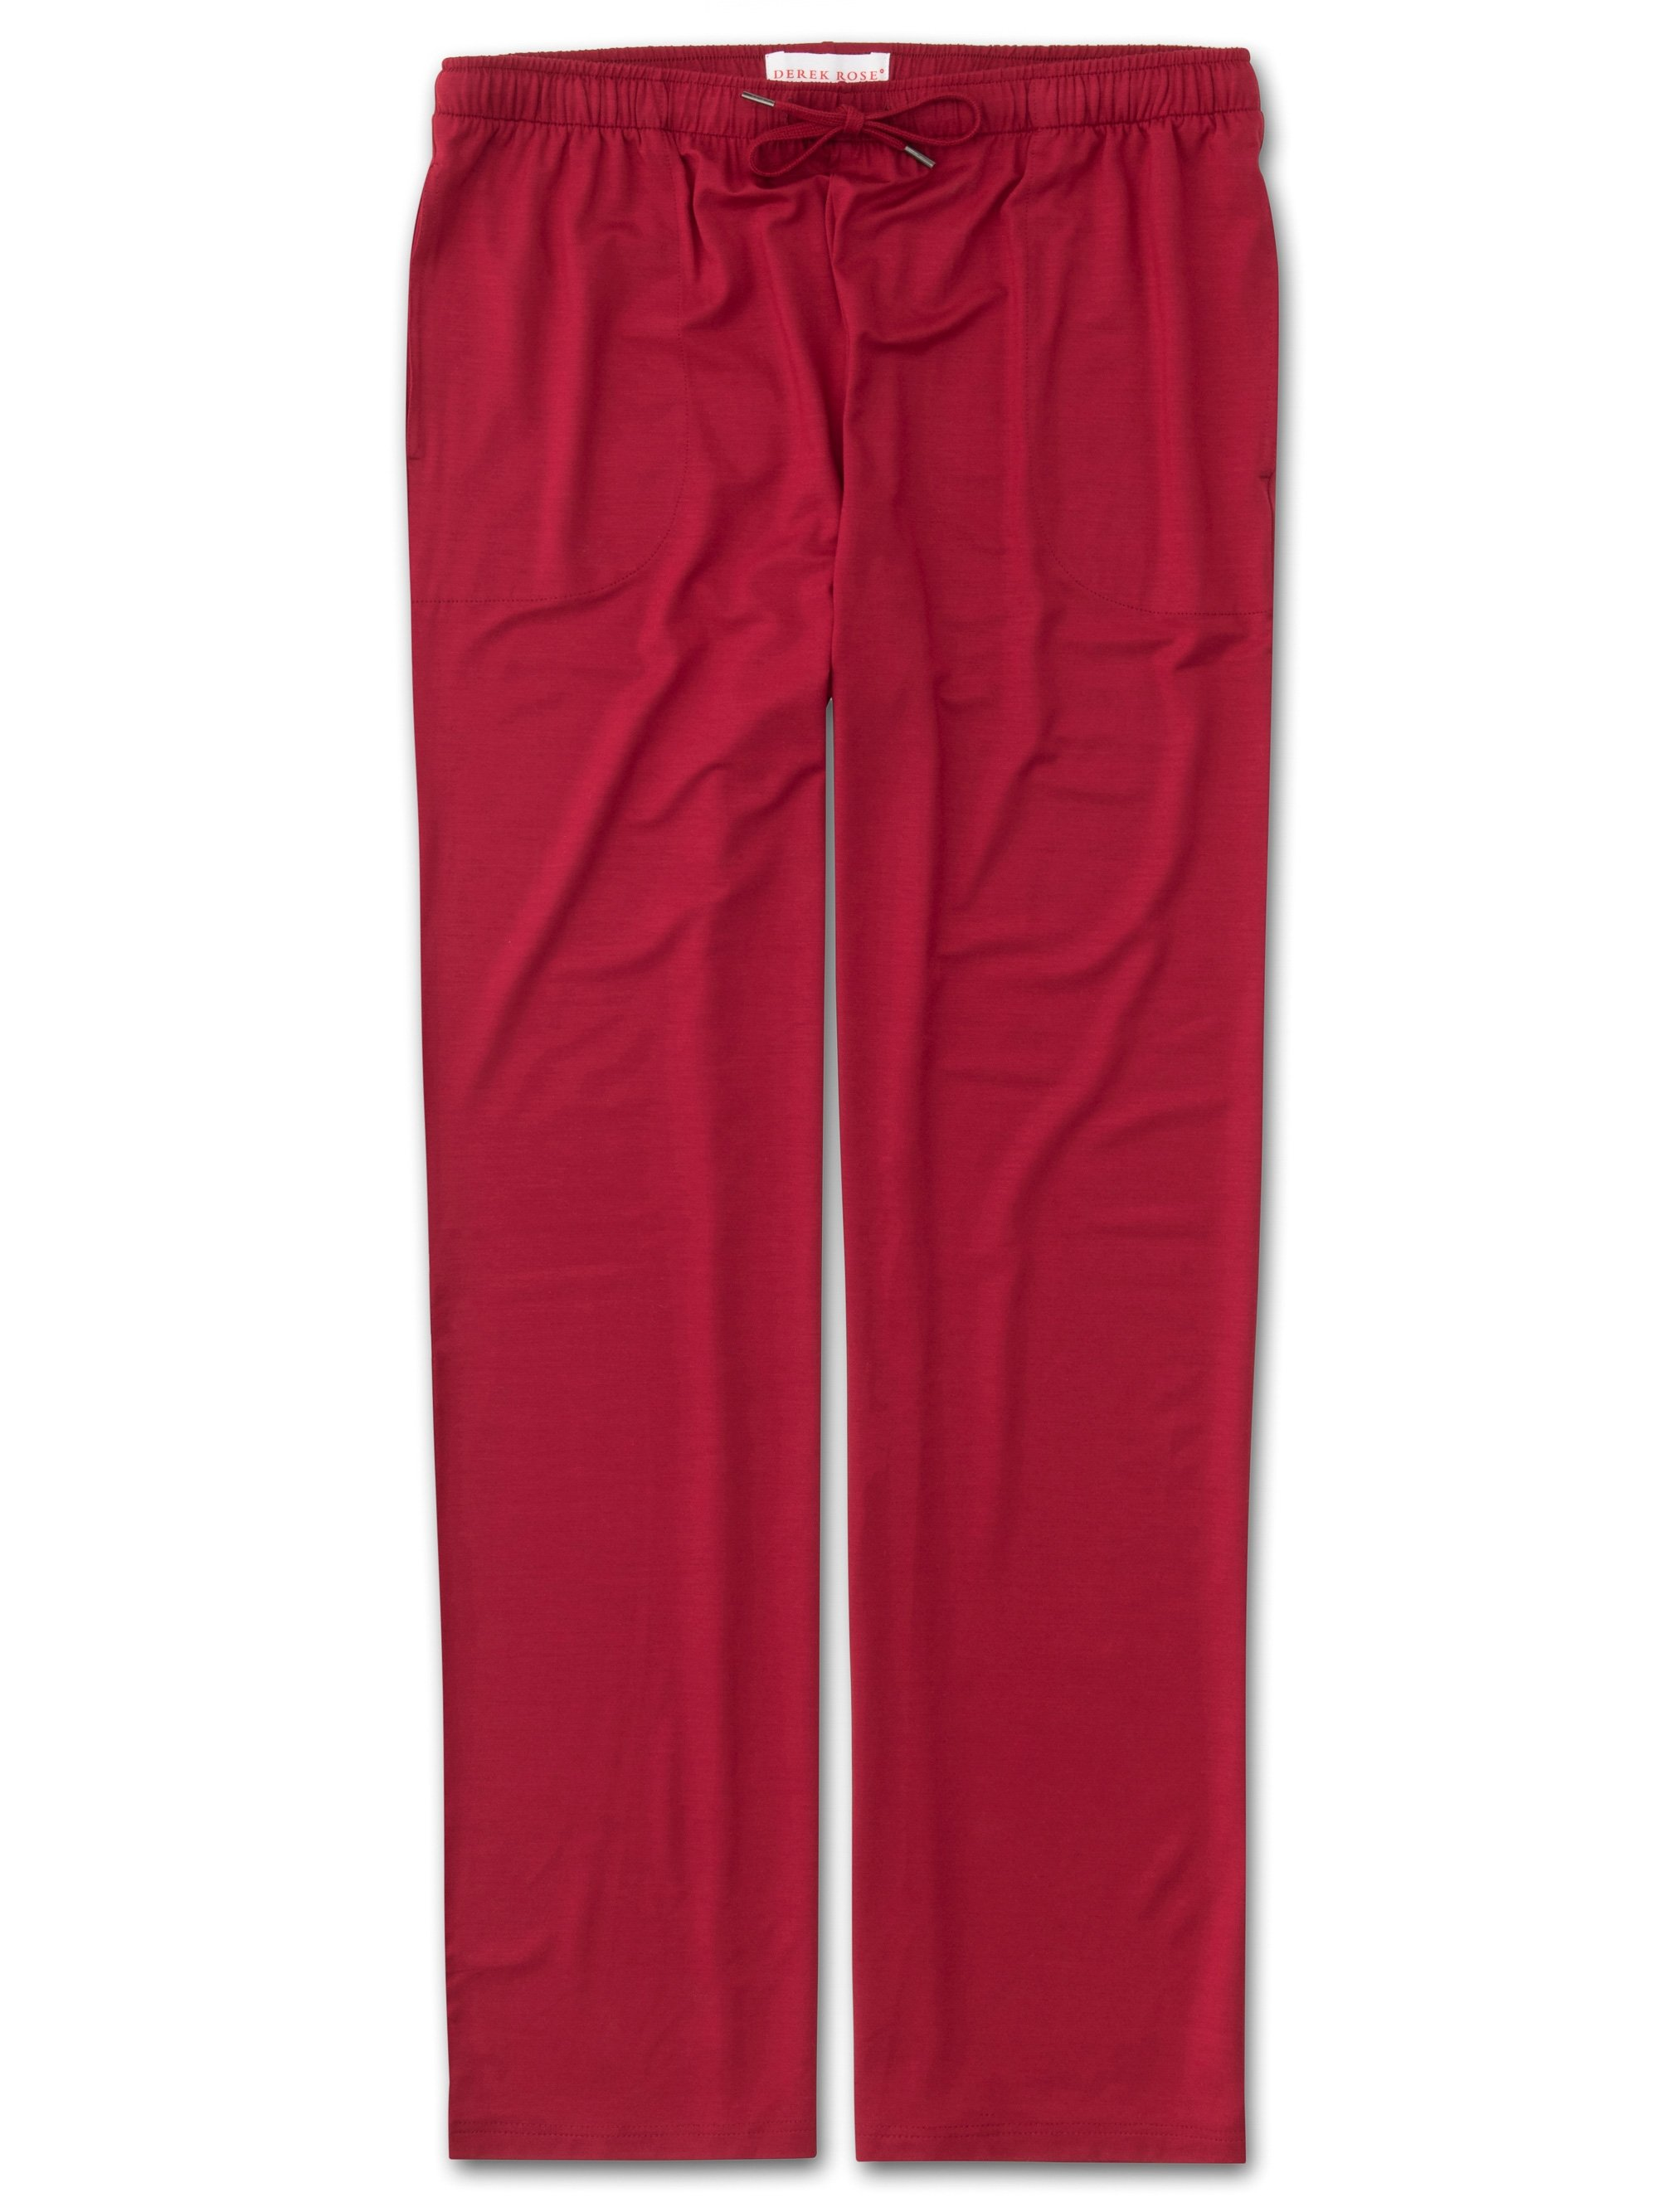 Men's Jersey Trousers Basel 8 Micro Modal Stretch Red